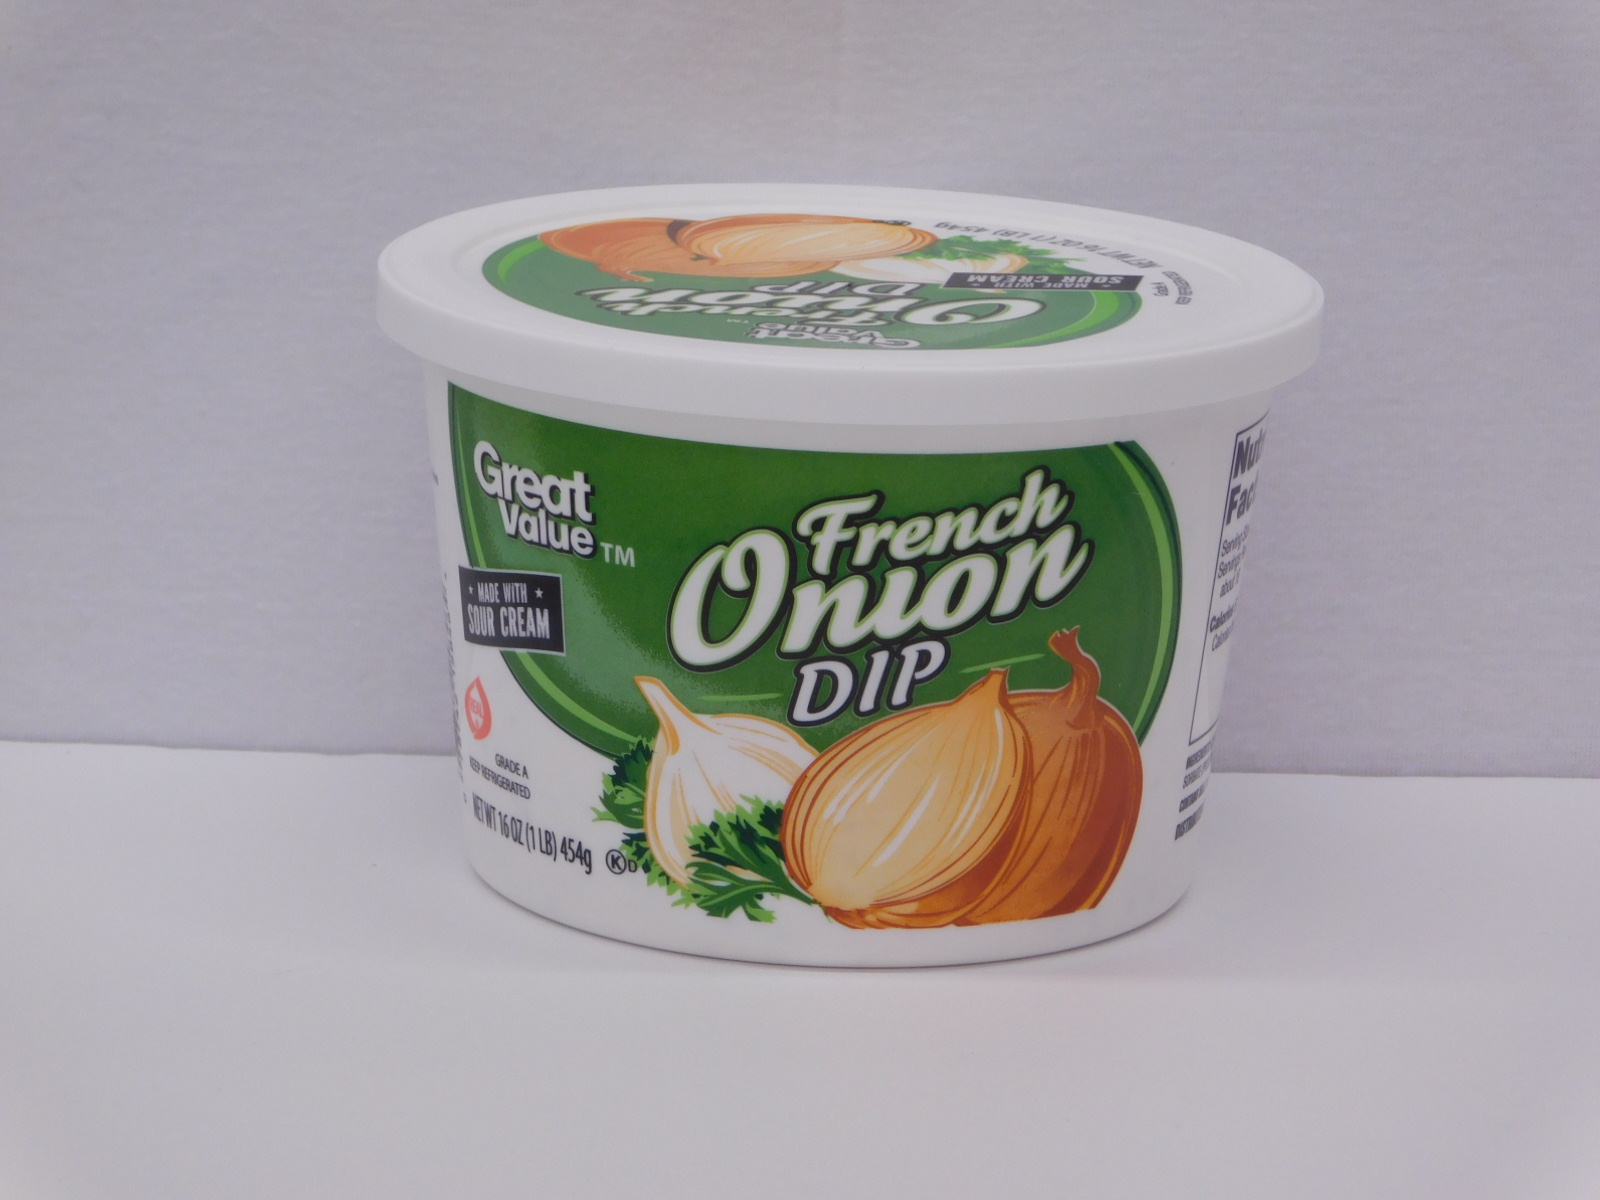 Great Value French Onion Dip